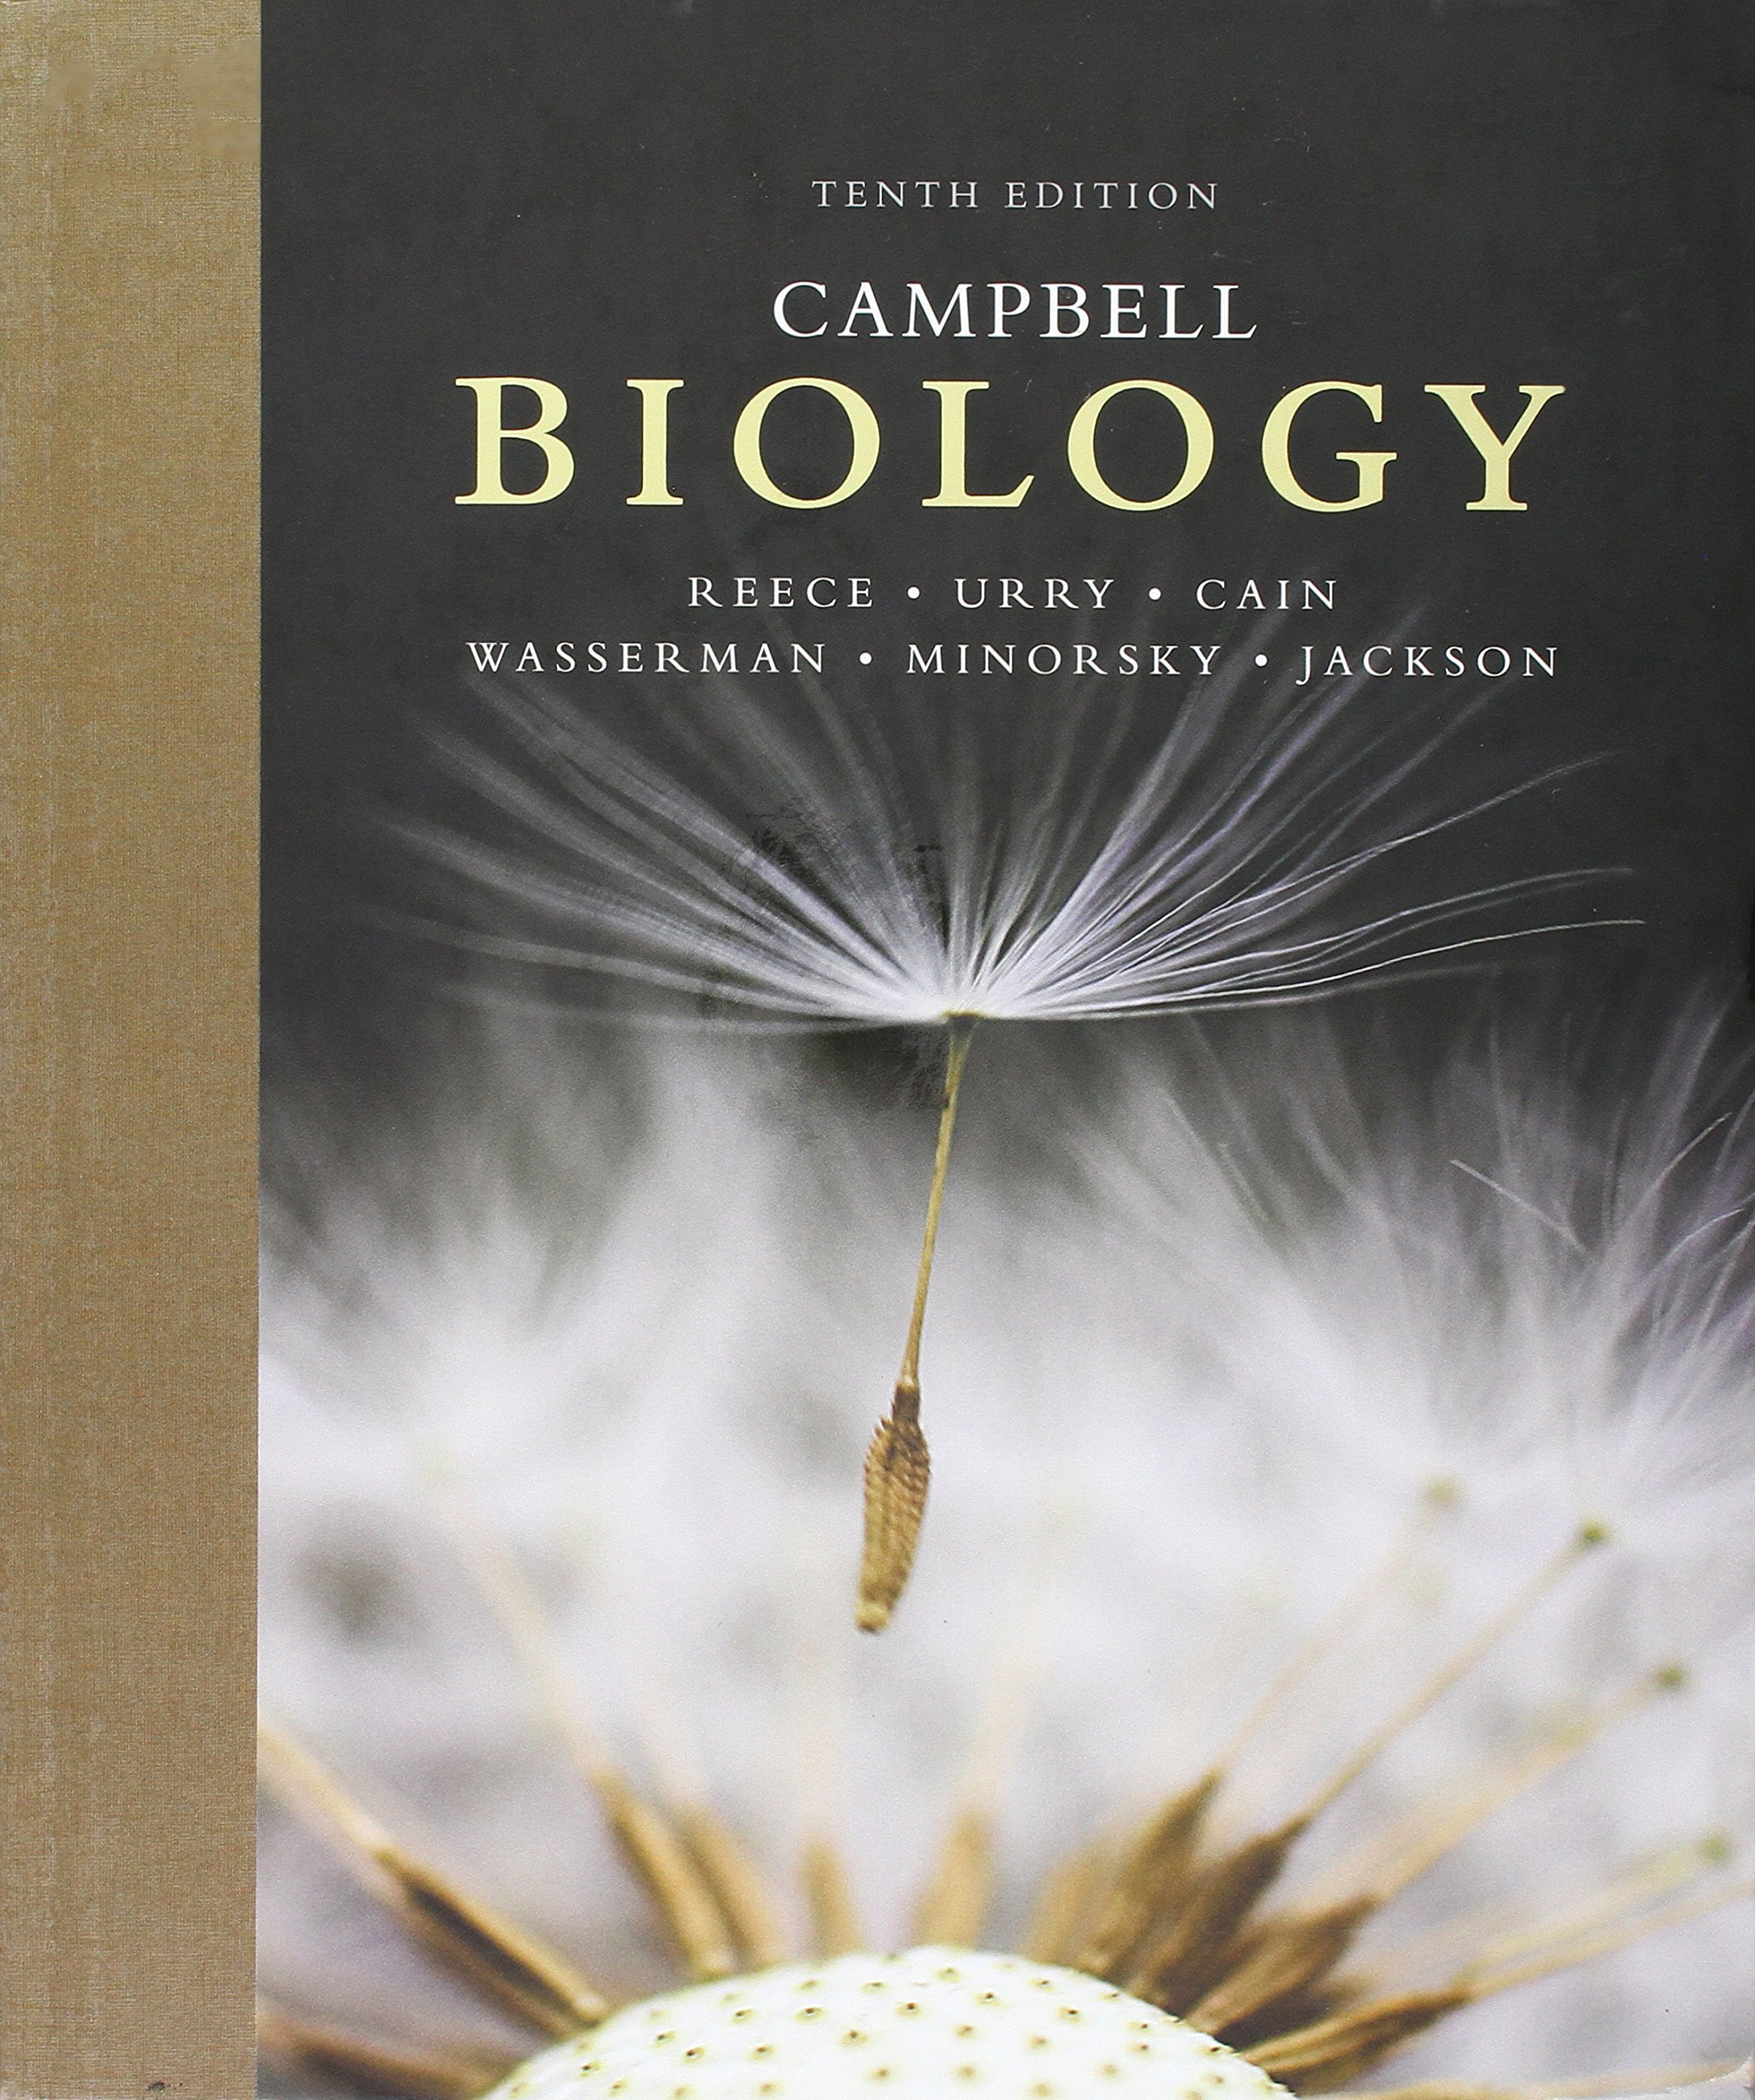 Campbell Biology 11th Edition Pdf - Free Books Download